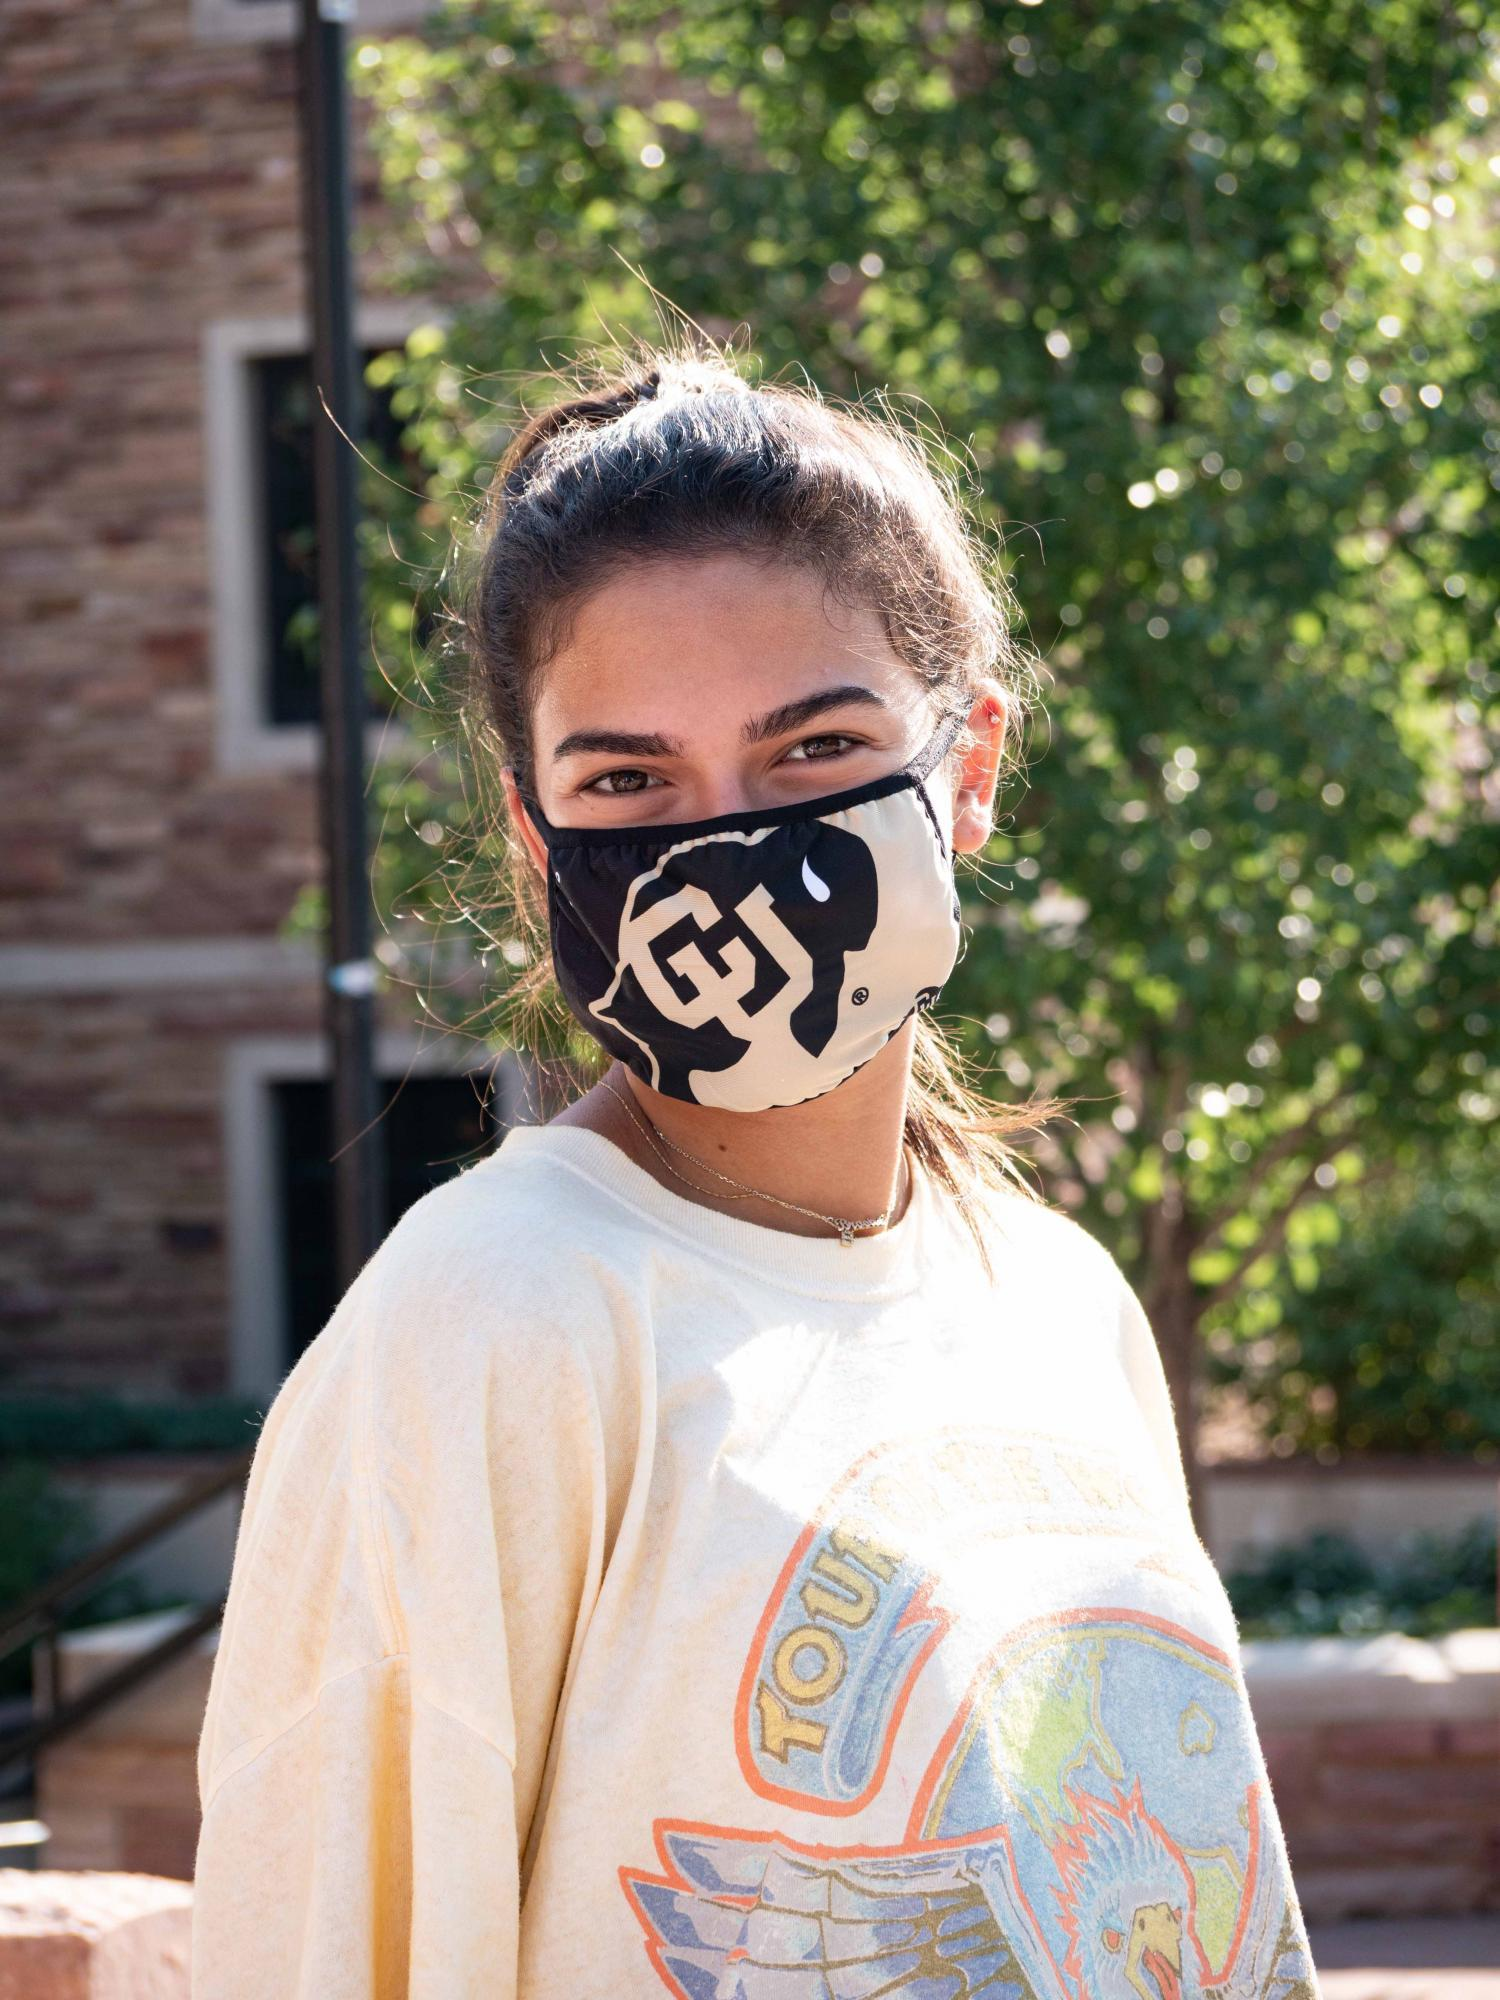 CU student wearing mask on campus